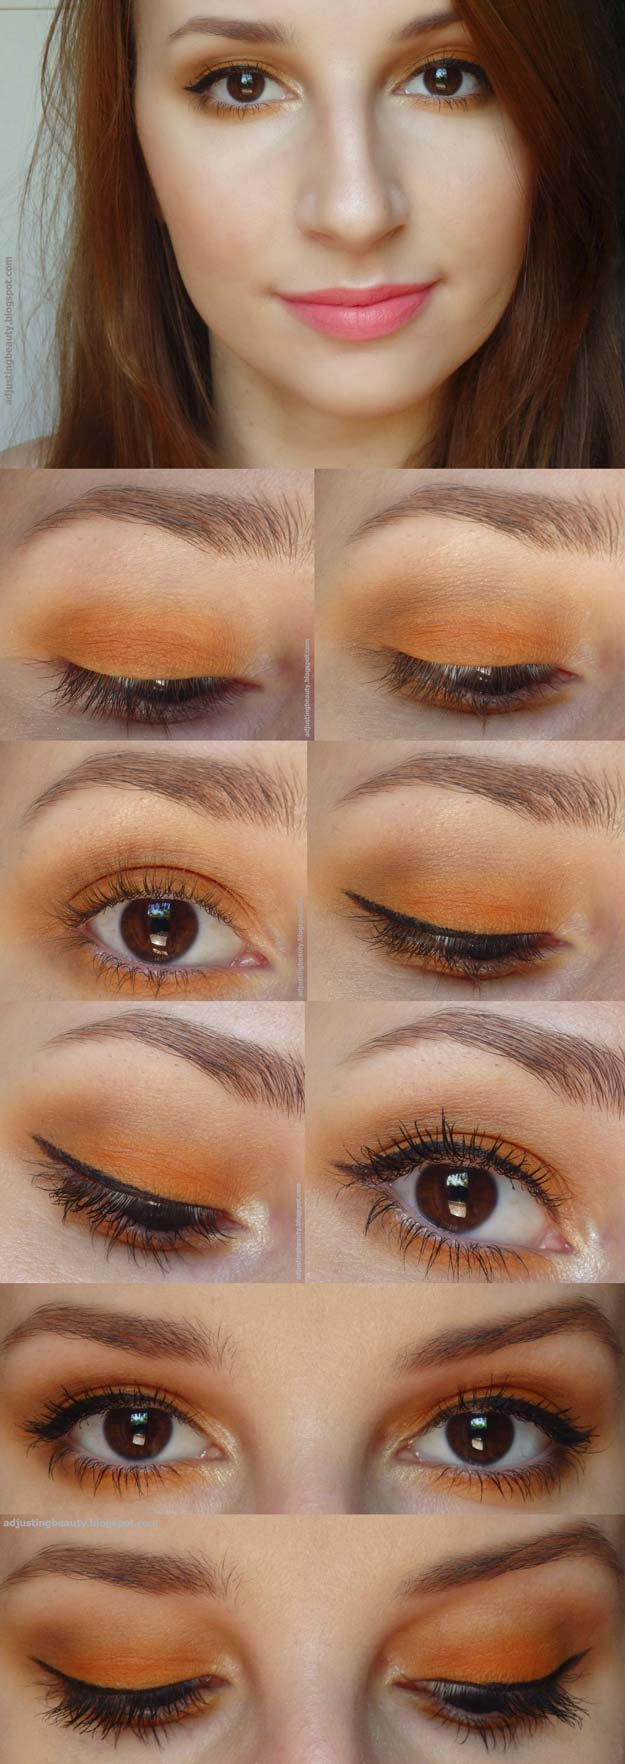 Easy eye makeup tricks